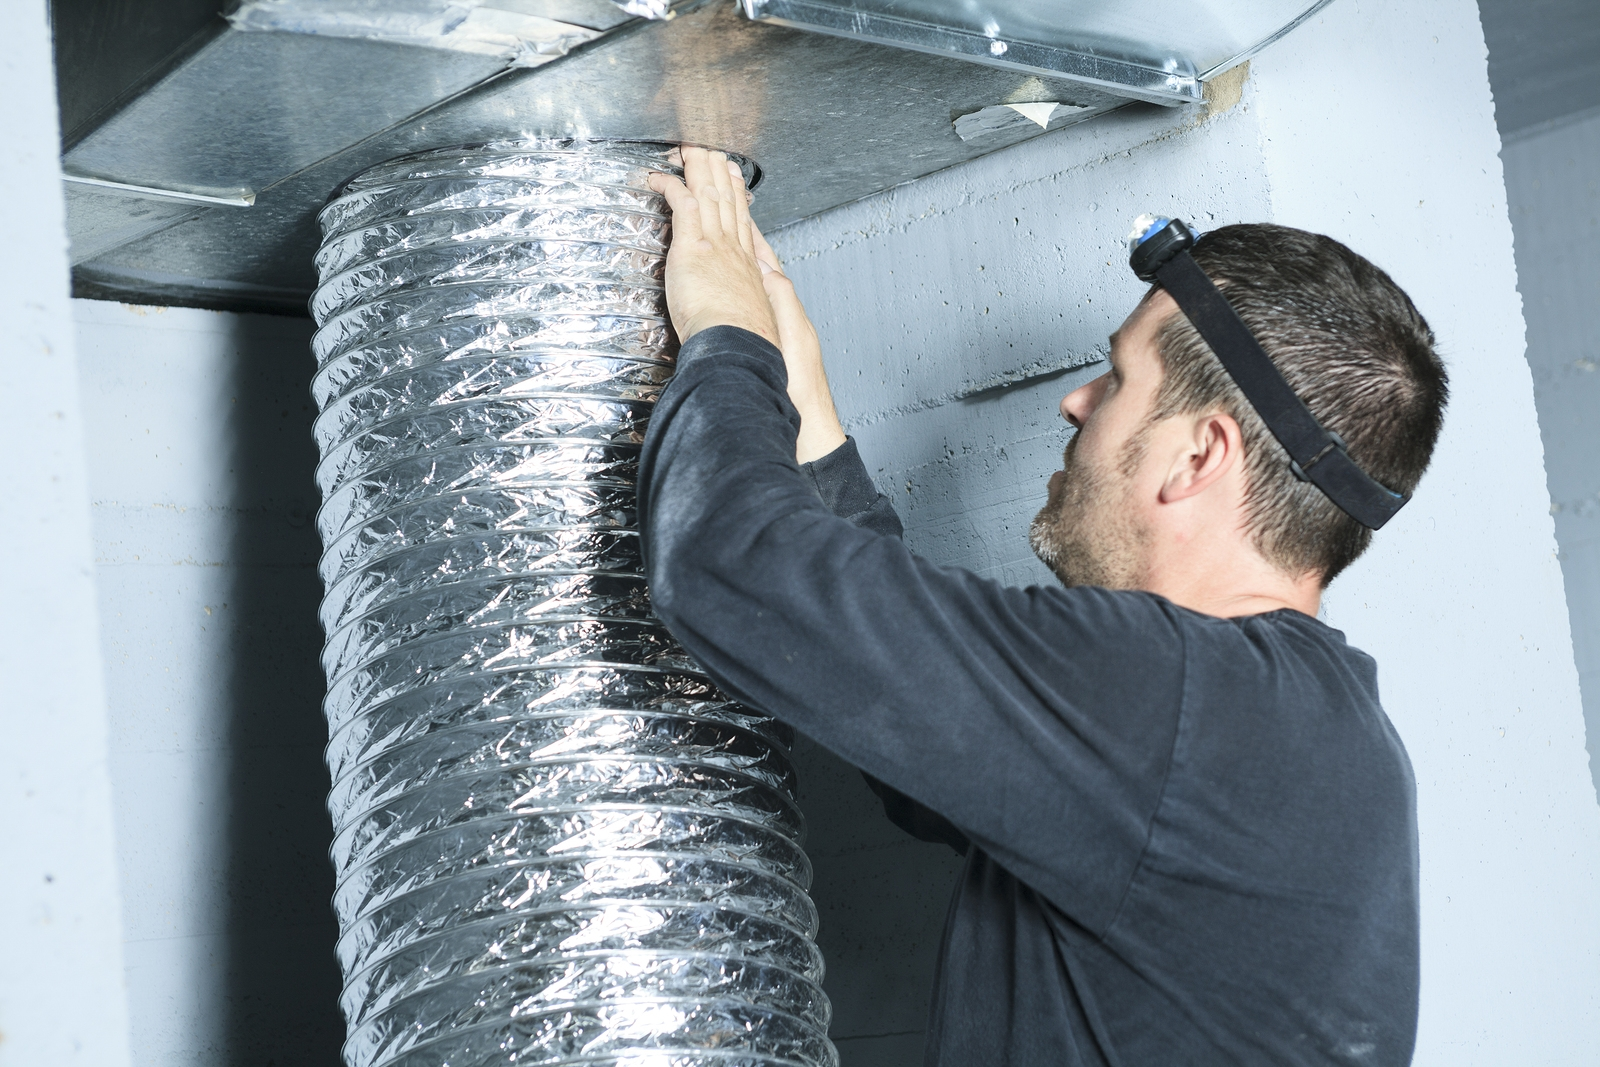 HVAC System Oders - What Do They Mean?